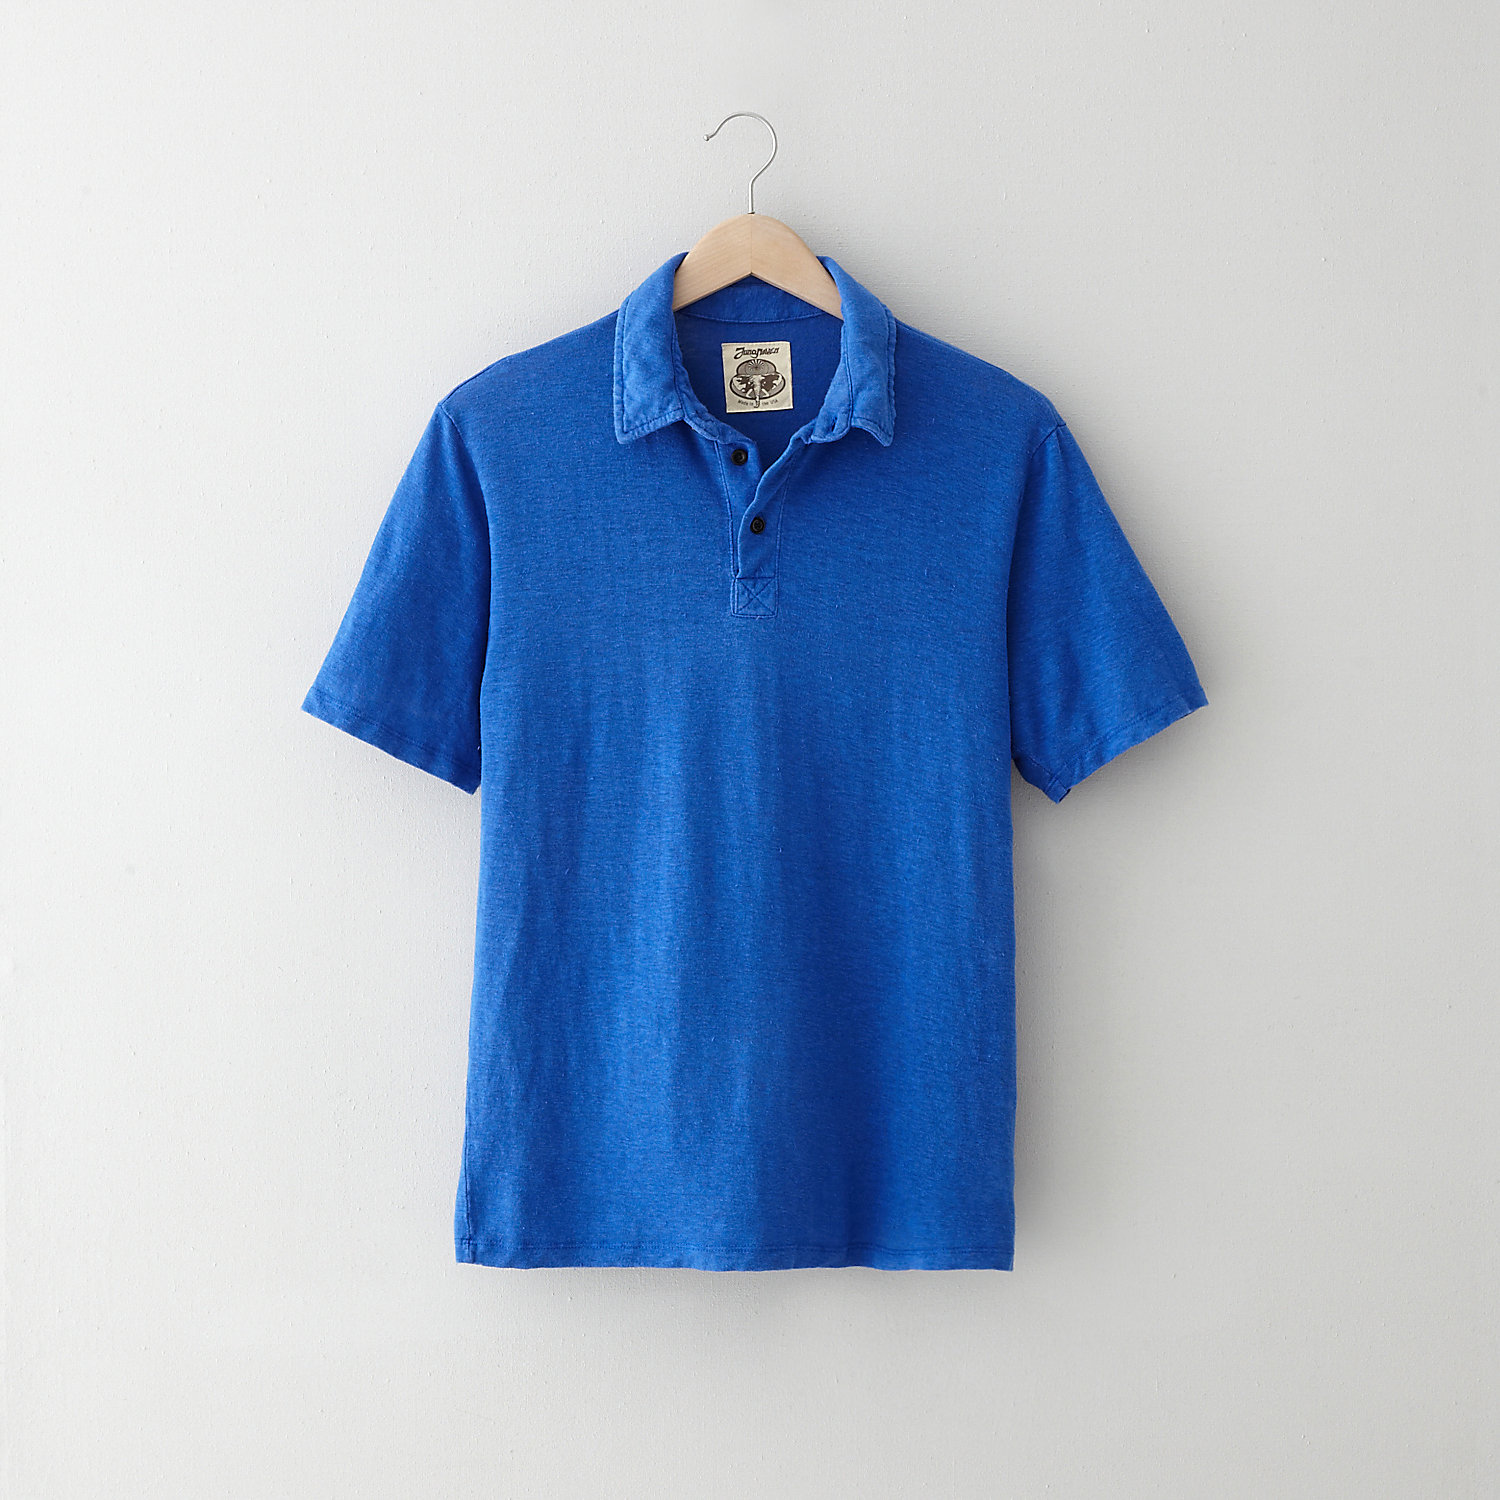 GARMENT DYED HEMP POLO